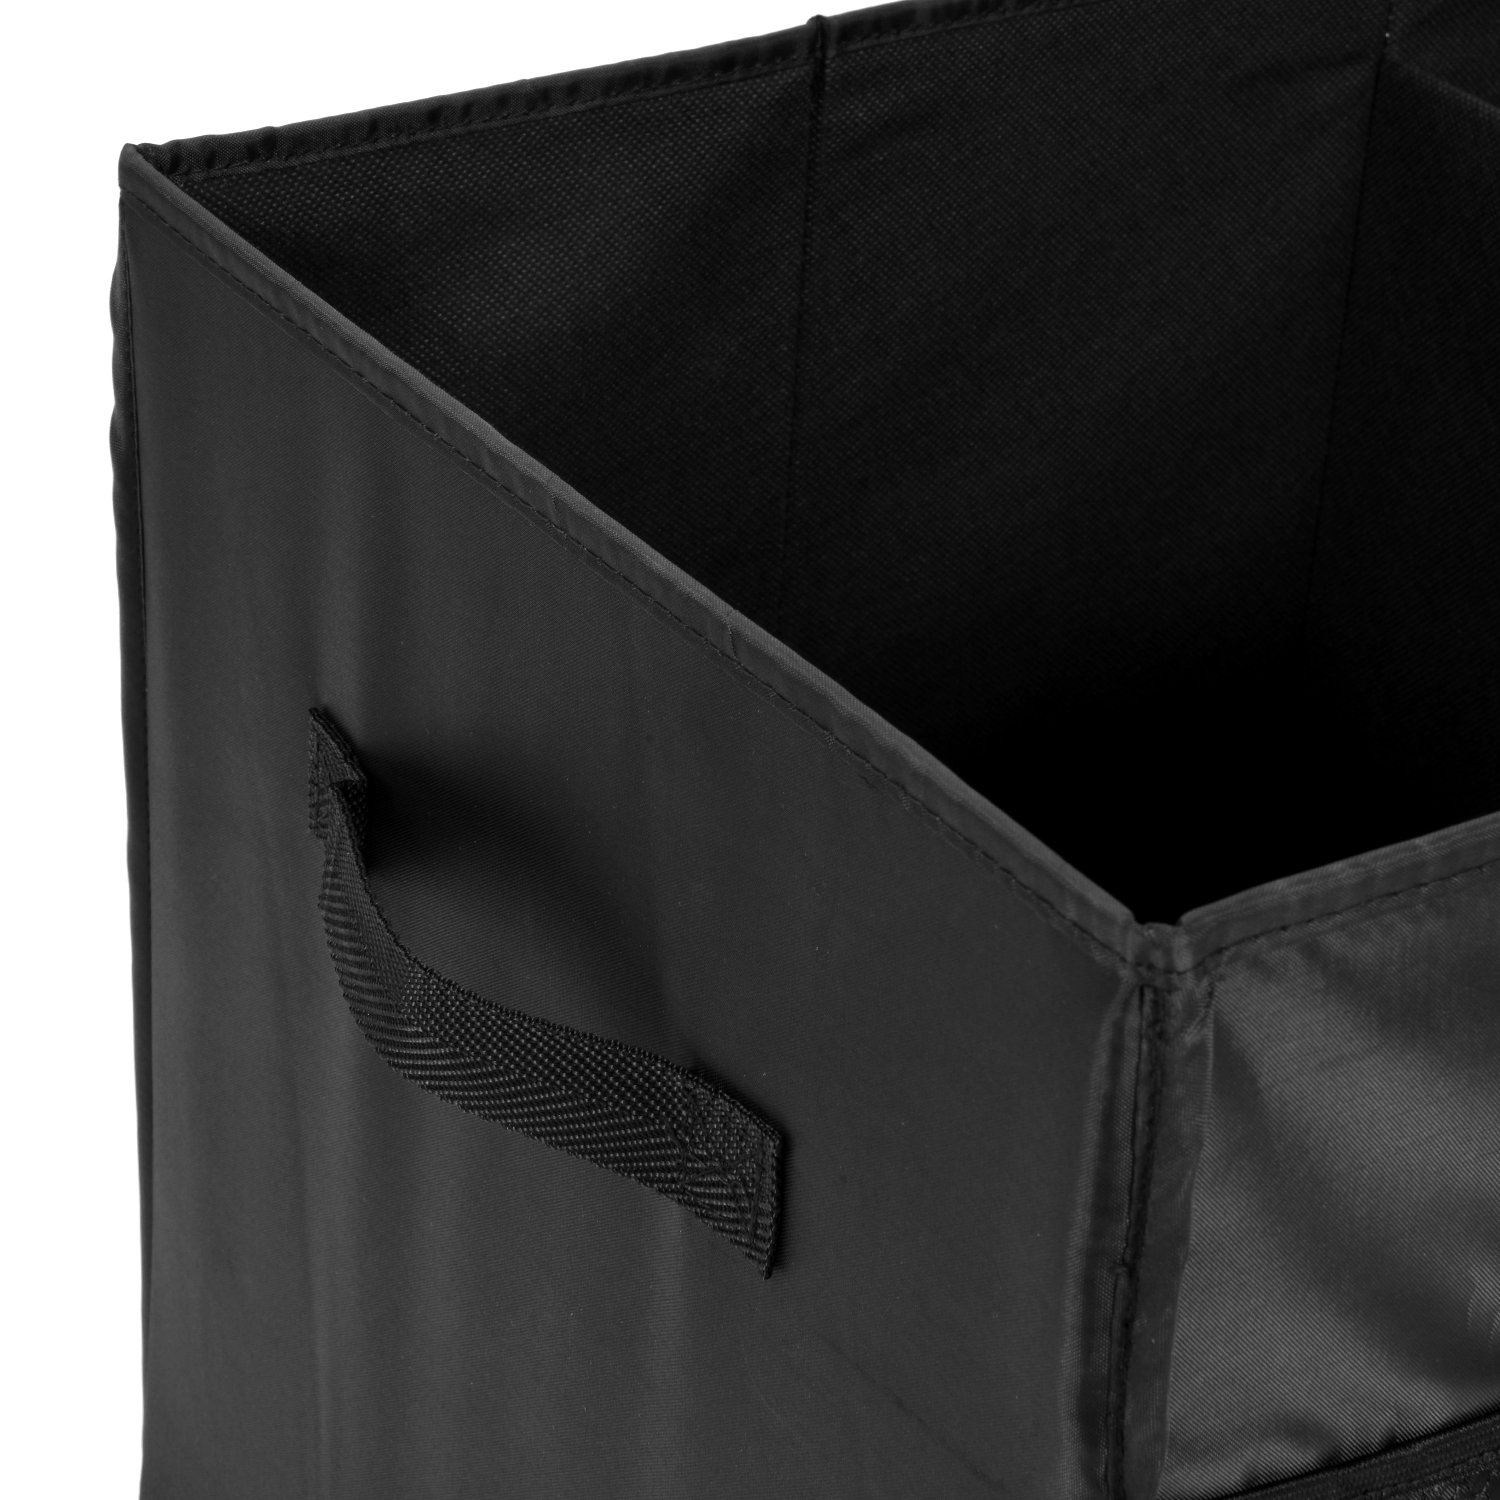 MaidMAX Car Trunk Organizer for SUV with Two Handles and Side Pockets, Foldable, Black, 25.5 Inches Long by MaidMAX (Image #7)